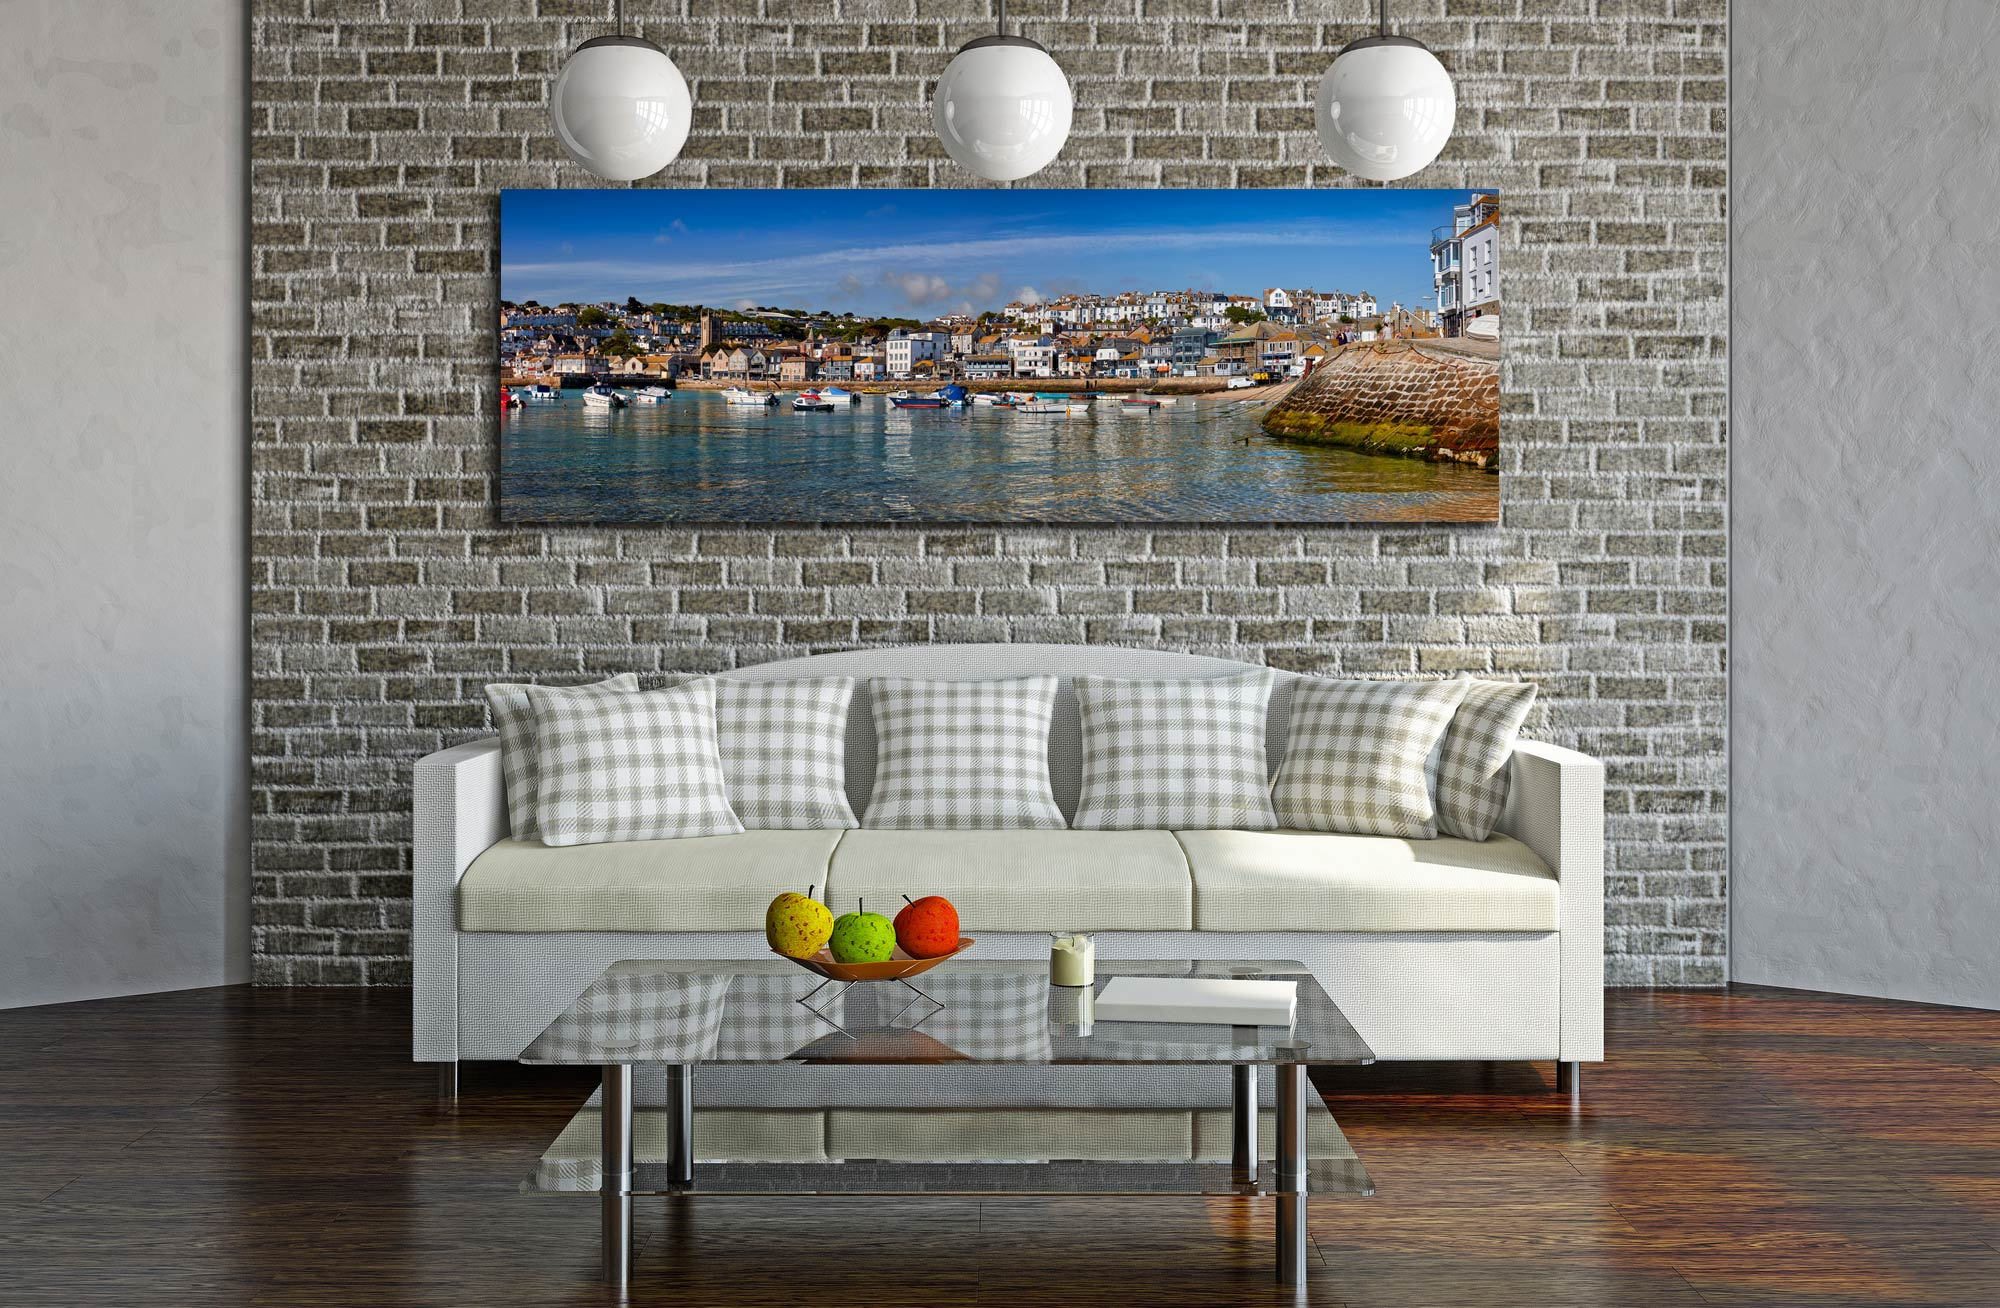 View of St Ives harbour and Wharf Road on clear sunny morning - Print Aluminium Backing With Acrylic Glazing on Wall